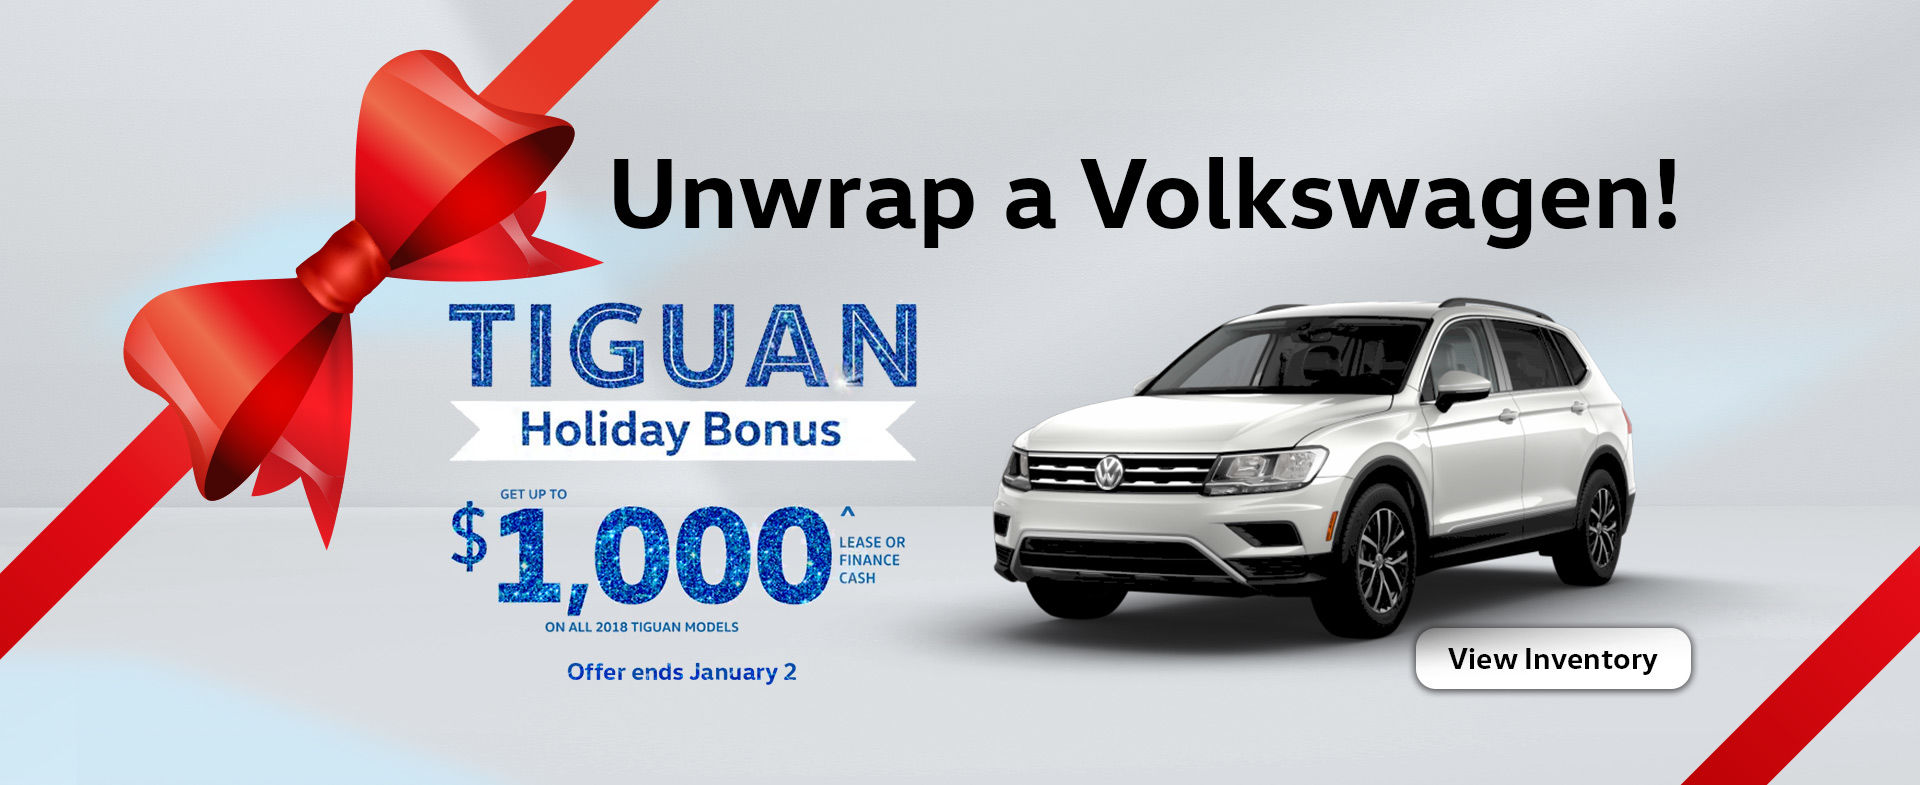 Unwrap a VW Tiguan this December